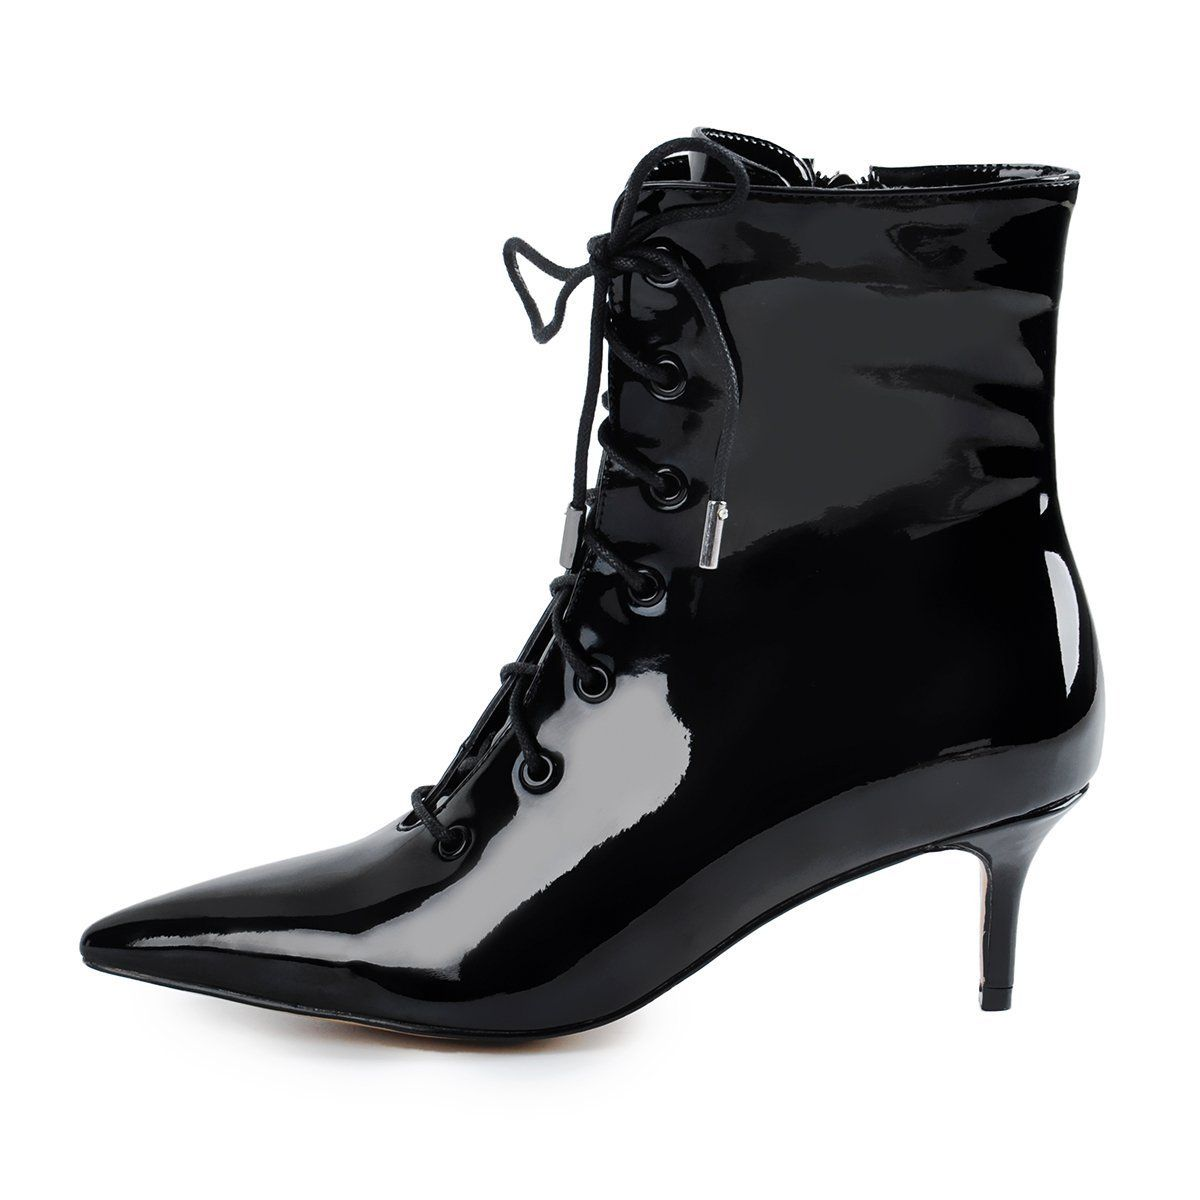 Kitten Low Heel Pointed Toe Lace Up Patent Black Leather Ankle Boots Kitten Heel Ankle Boots Leather Ankle Boots Black Leather Ankle Boots